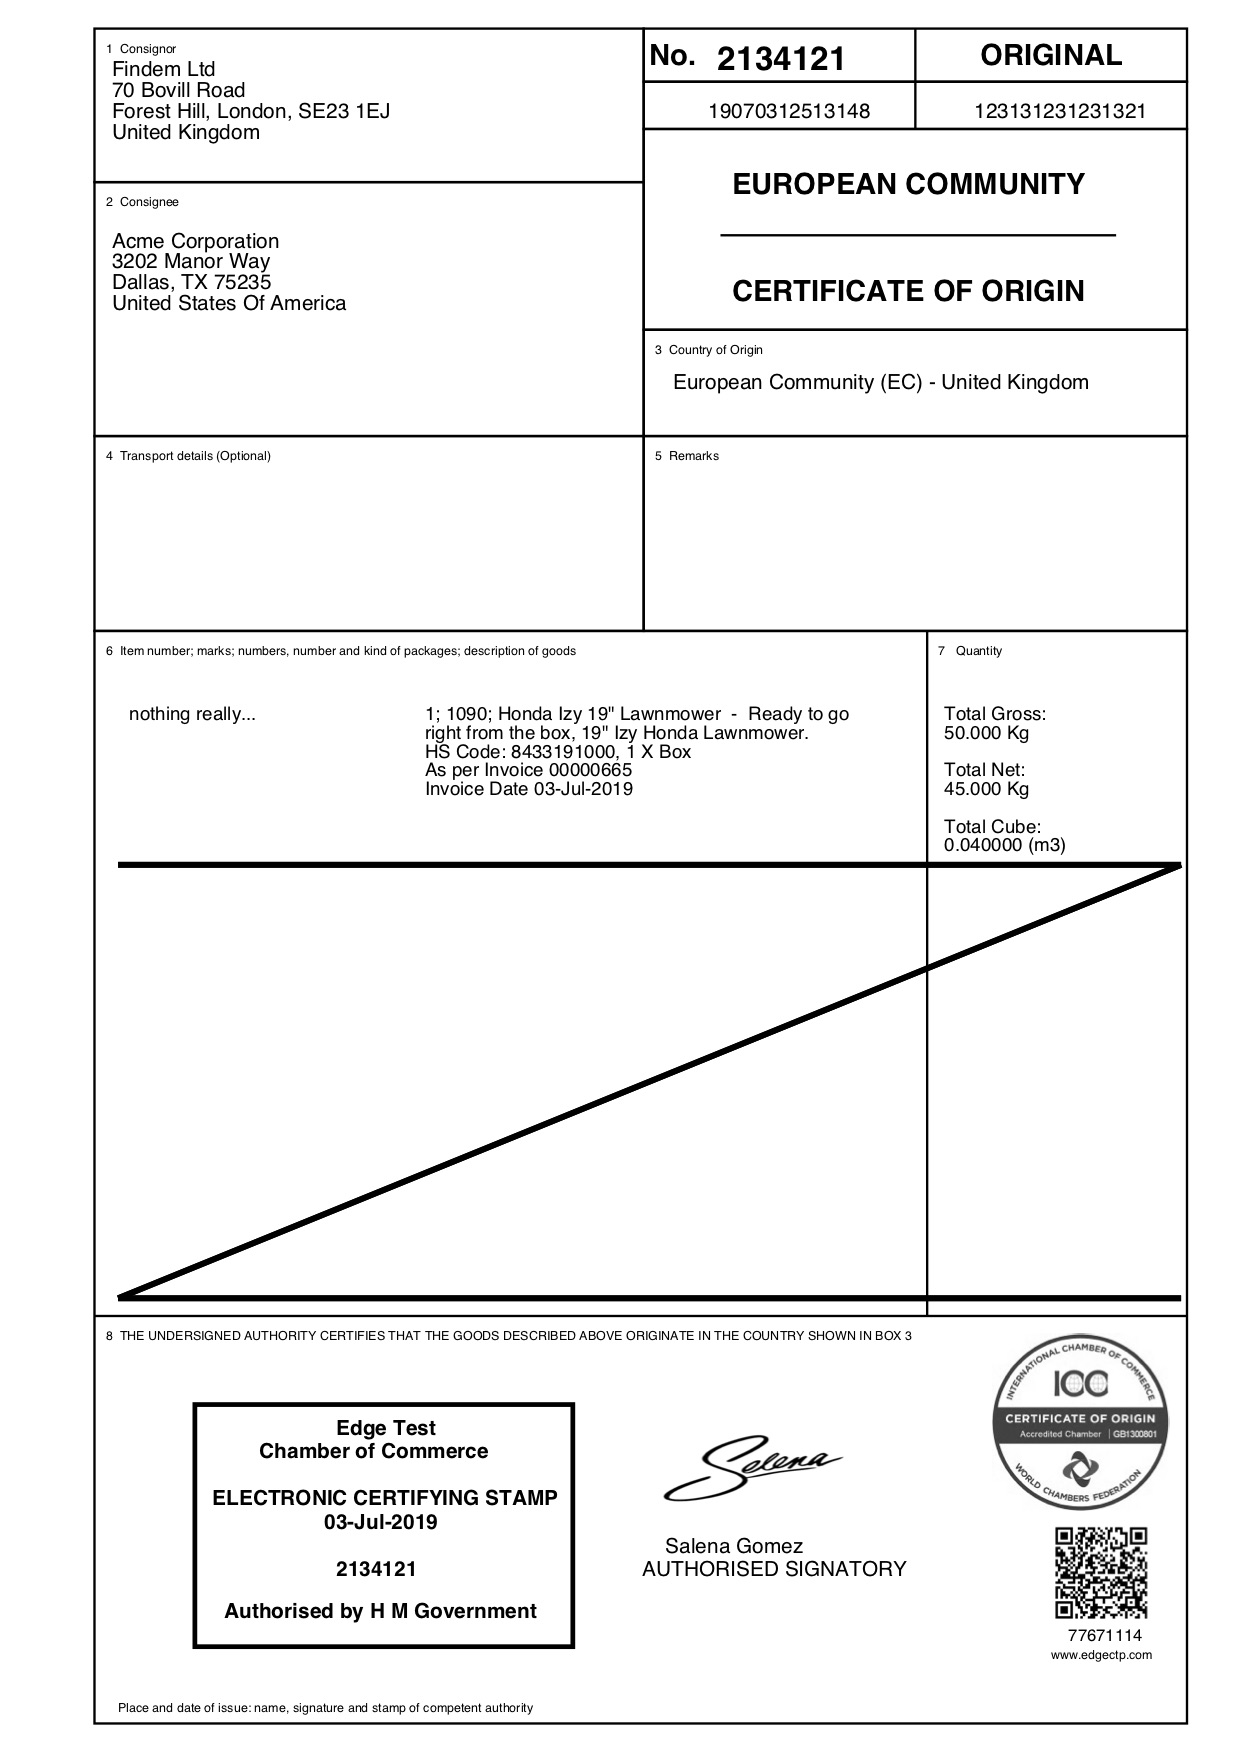 Sample EC Certificate of Origin from EdgeCTP and EdgeCERTS